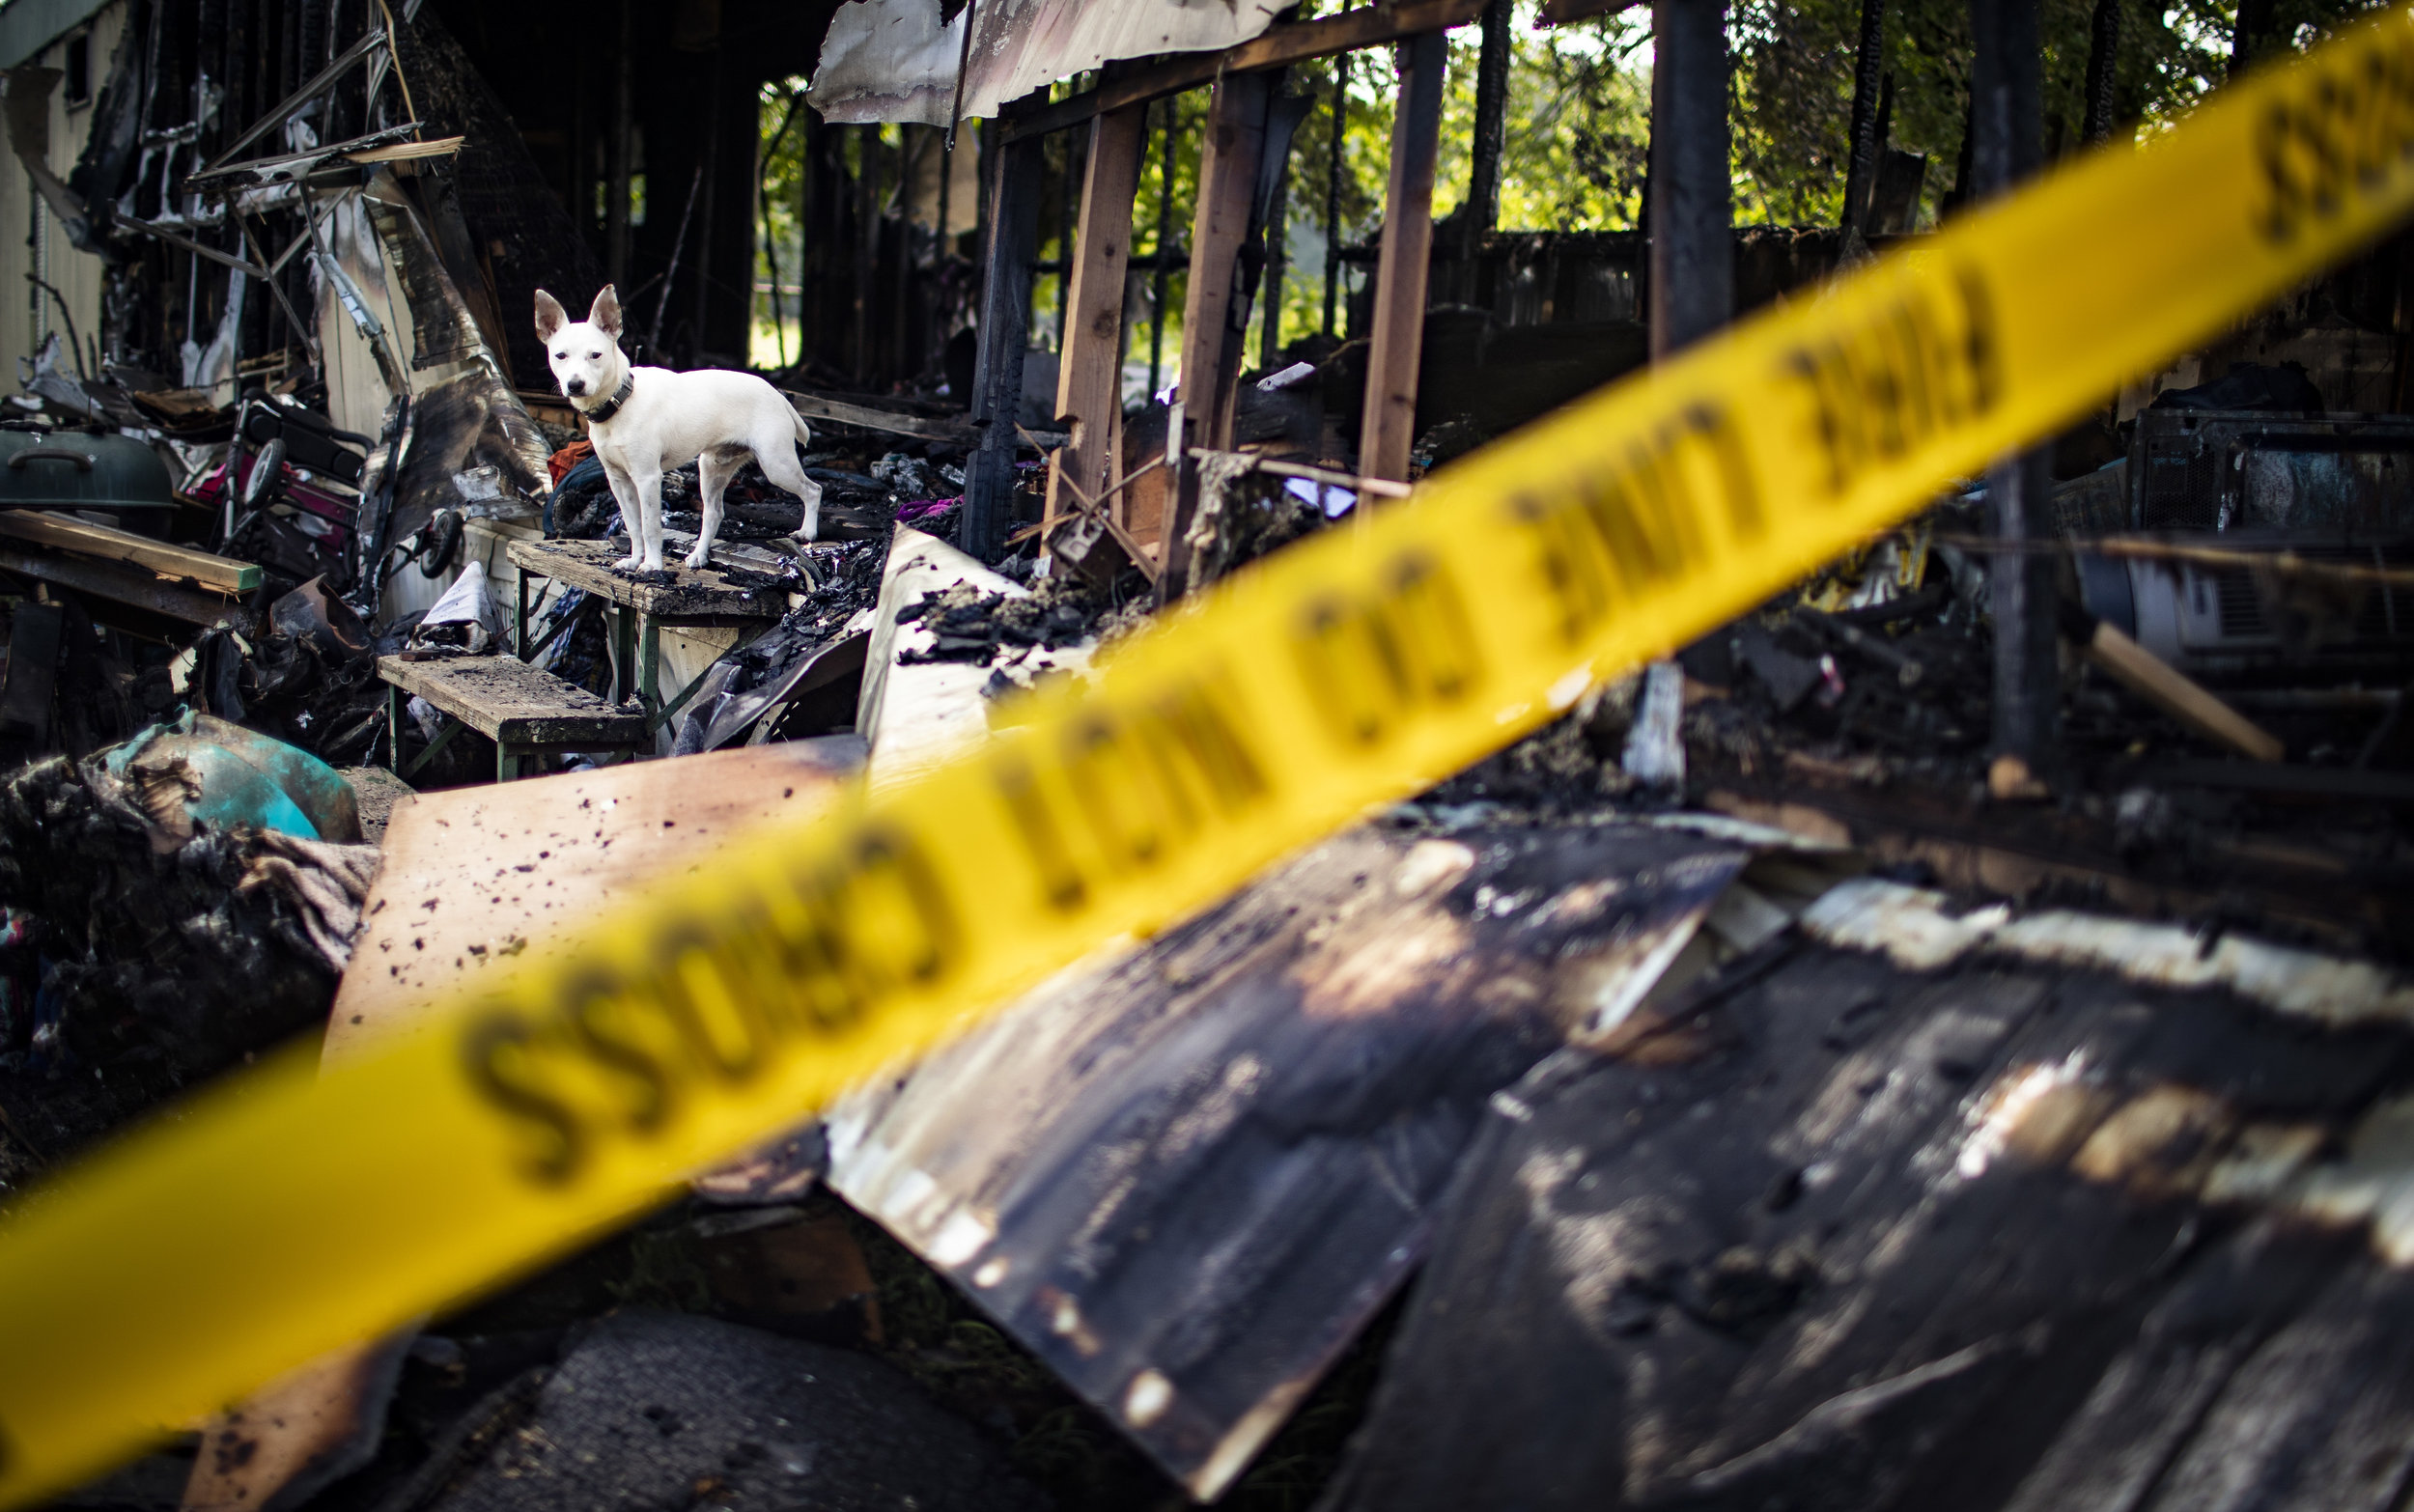 A dog stands in the former doorway of a trailer home that caught fire after being struck by lightning on Thursday, August 16, 2018, at 333 Fairview Boiling Springs Road, Unit 6.